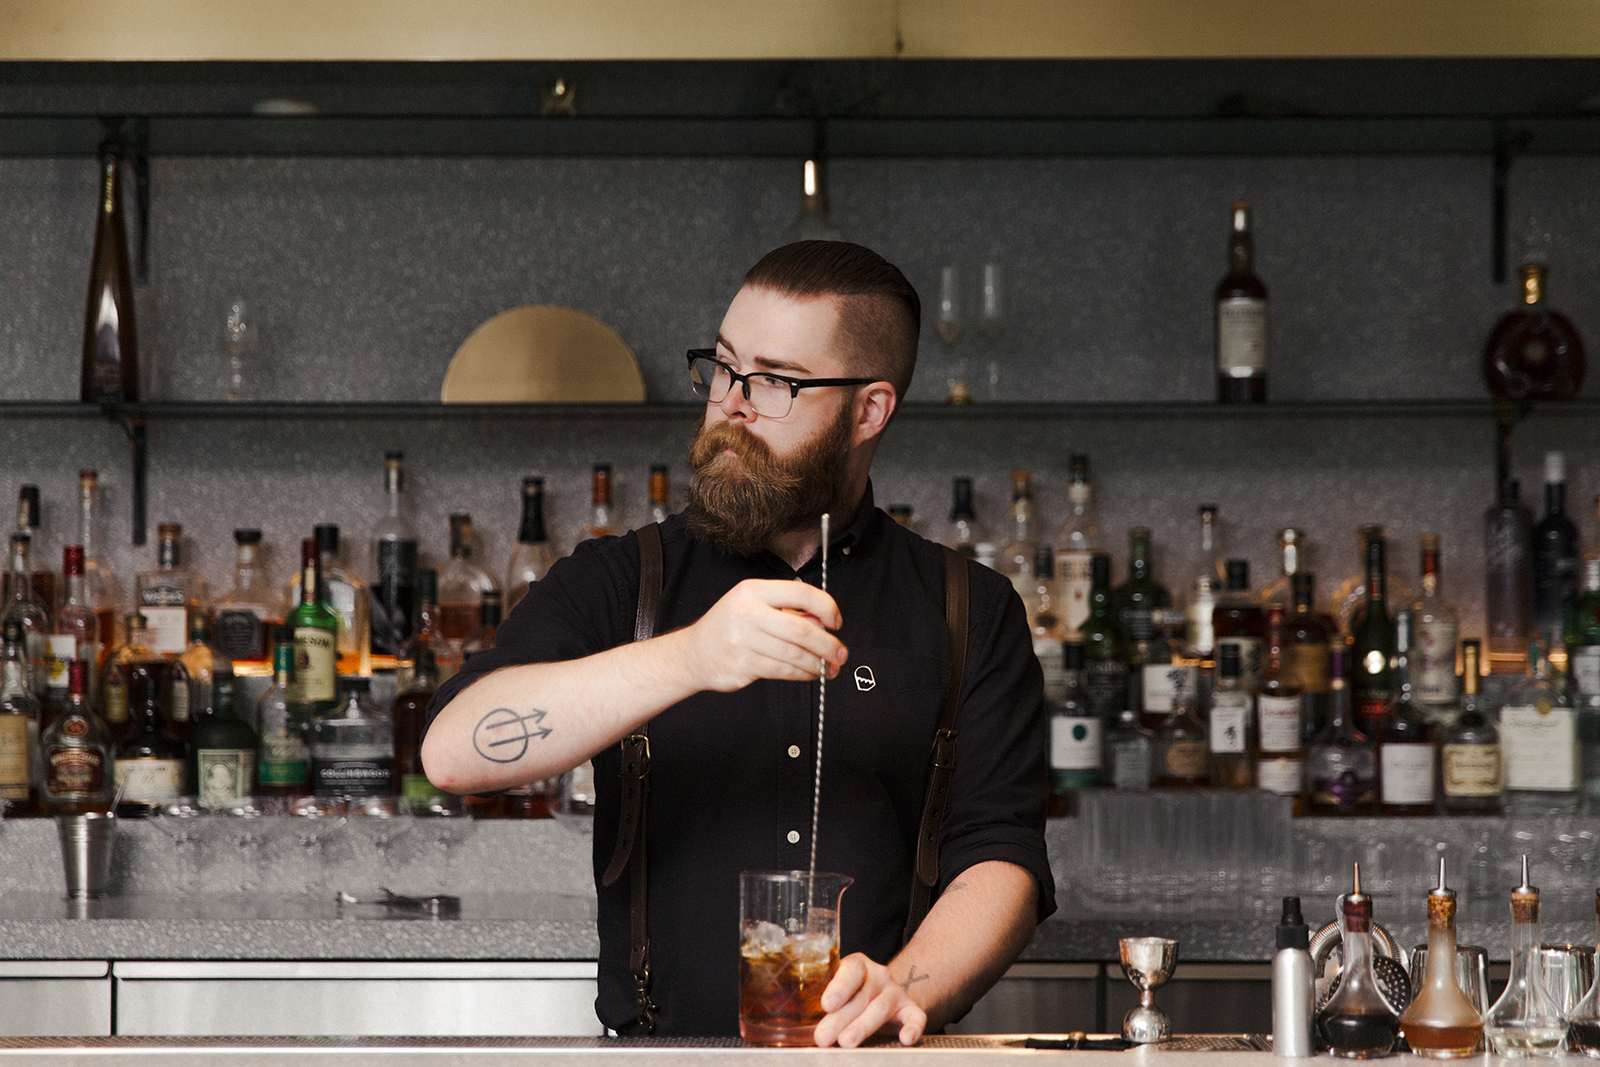 A Vancouver bartender represents the restaurant industry.